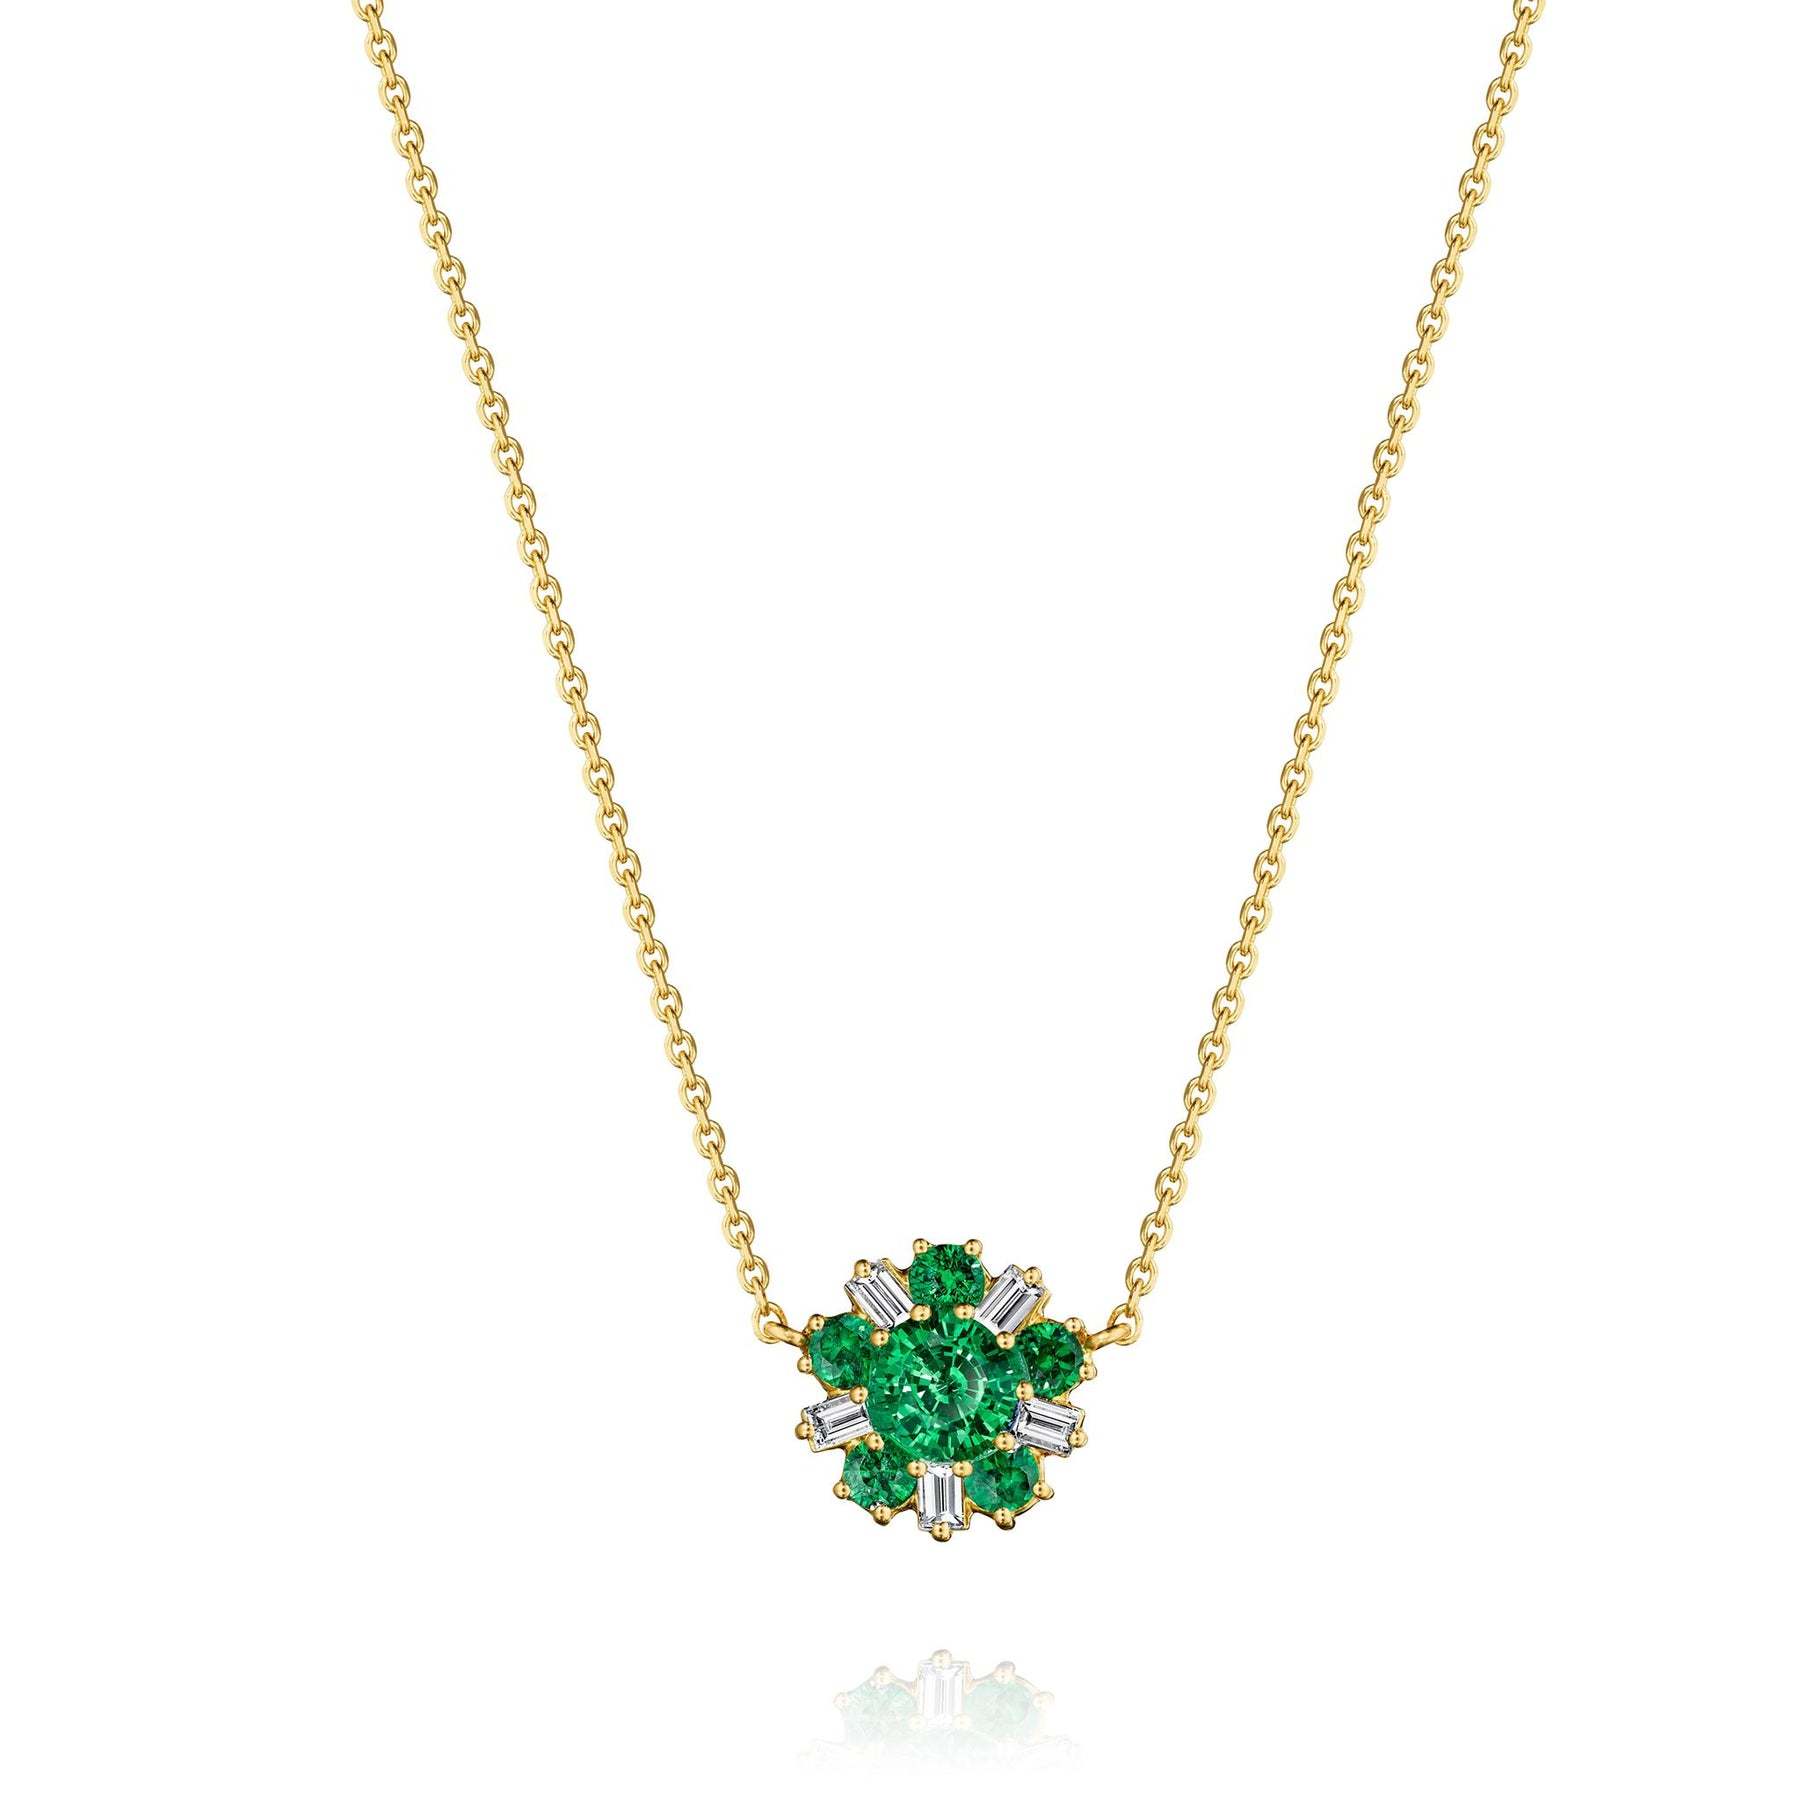 Mimi-So-Wonderland-Ballerina-Necklace-Emerald_18k Yellow Gold